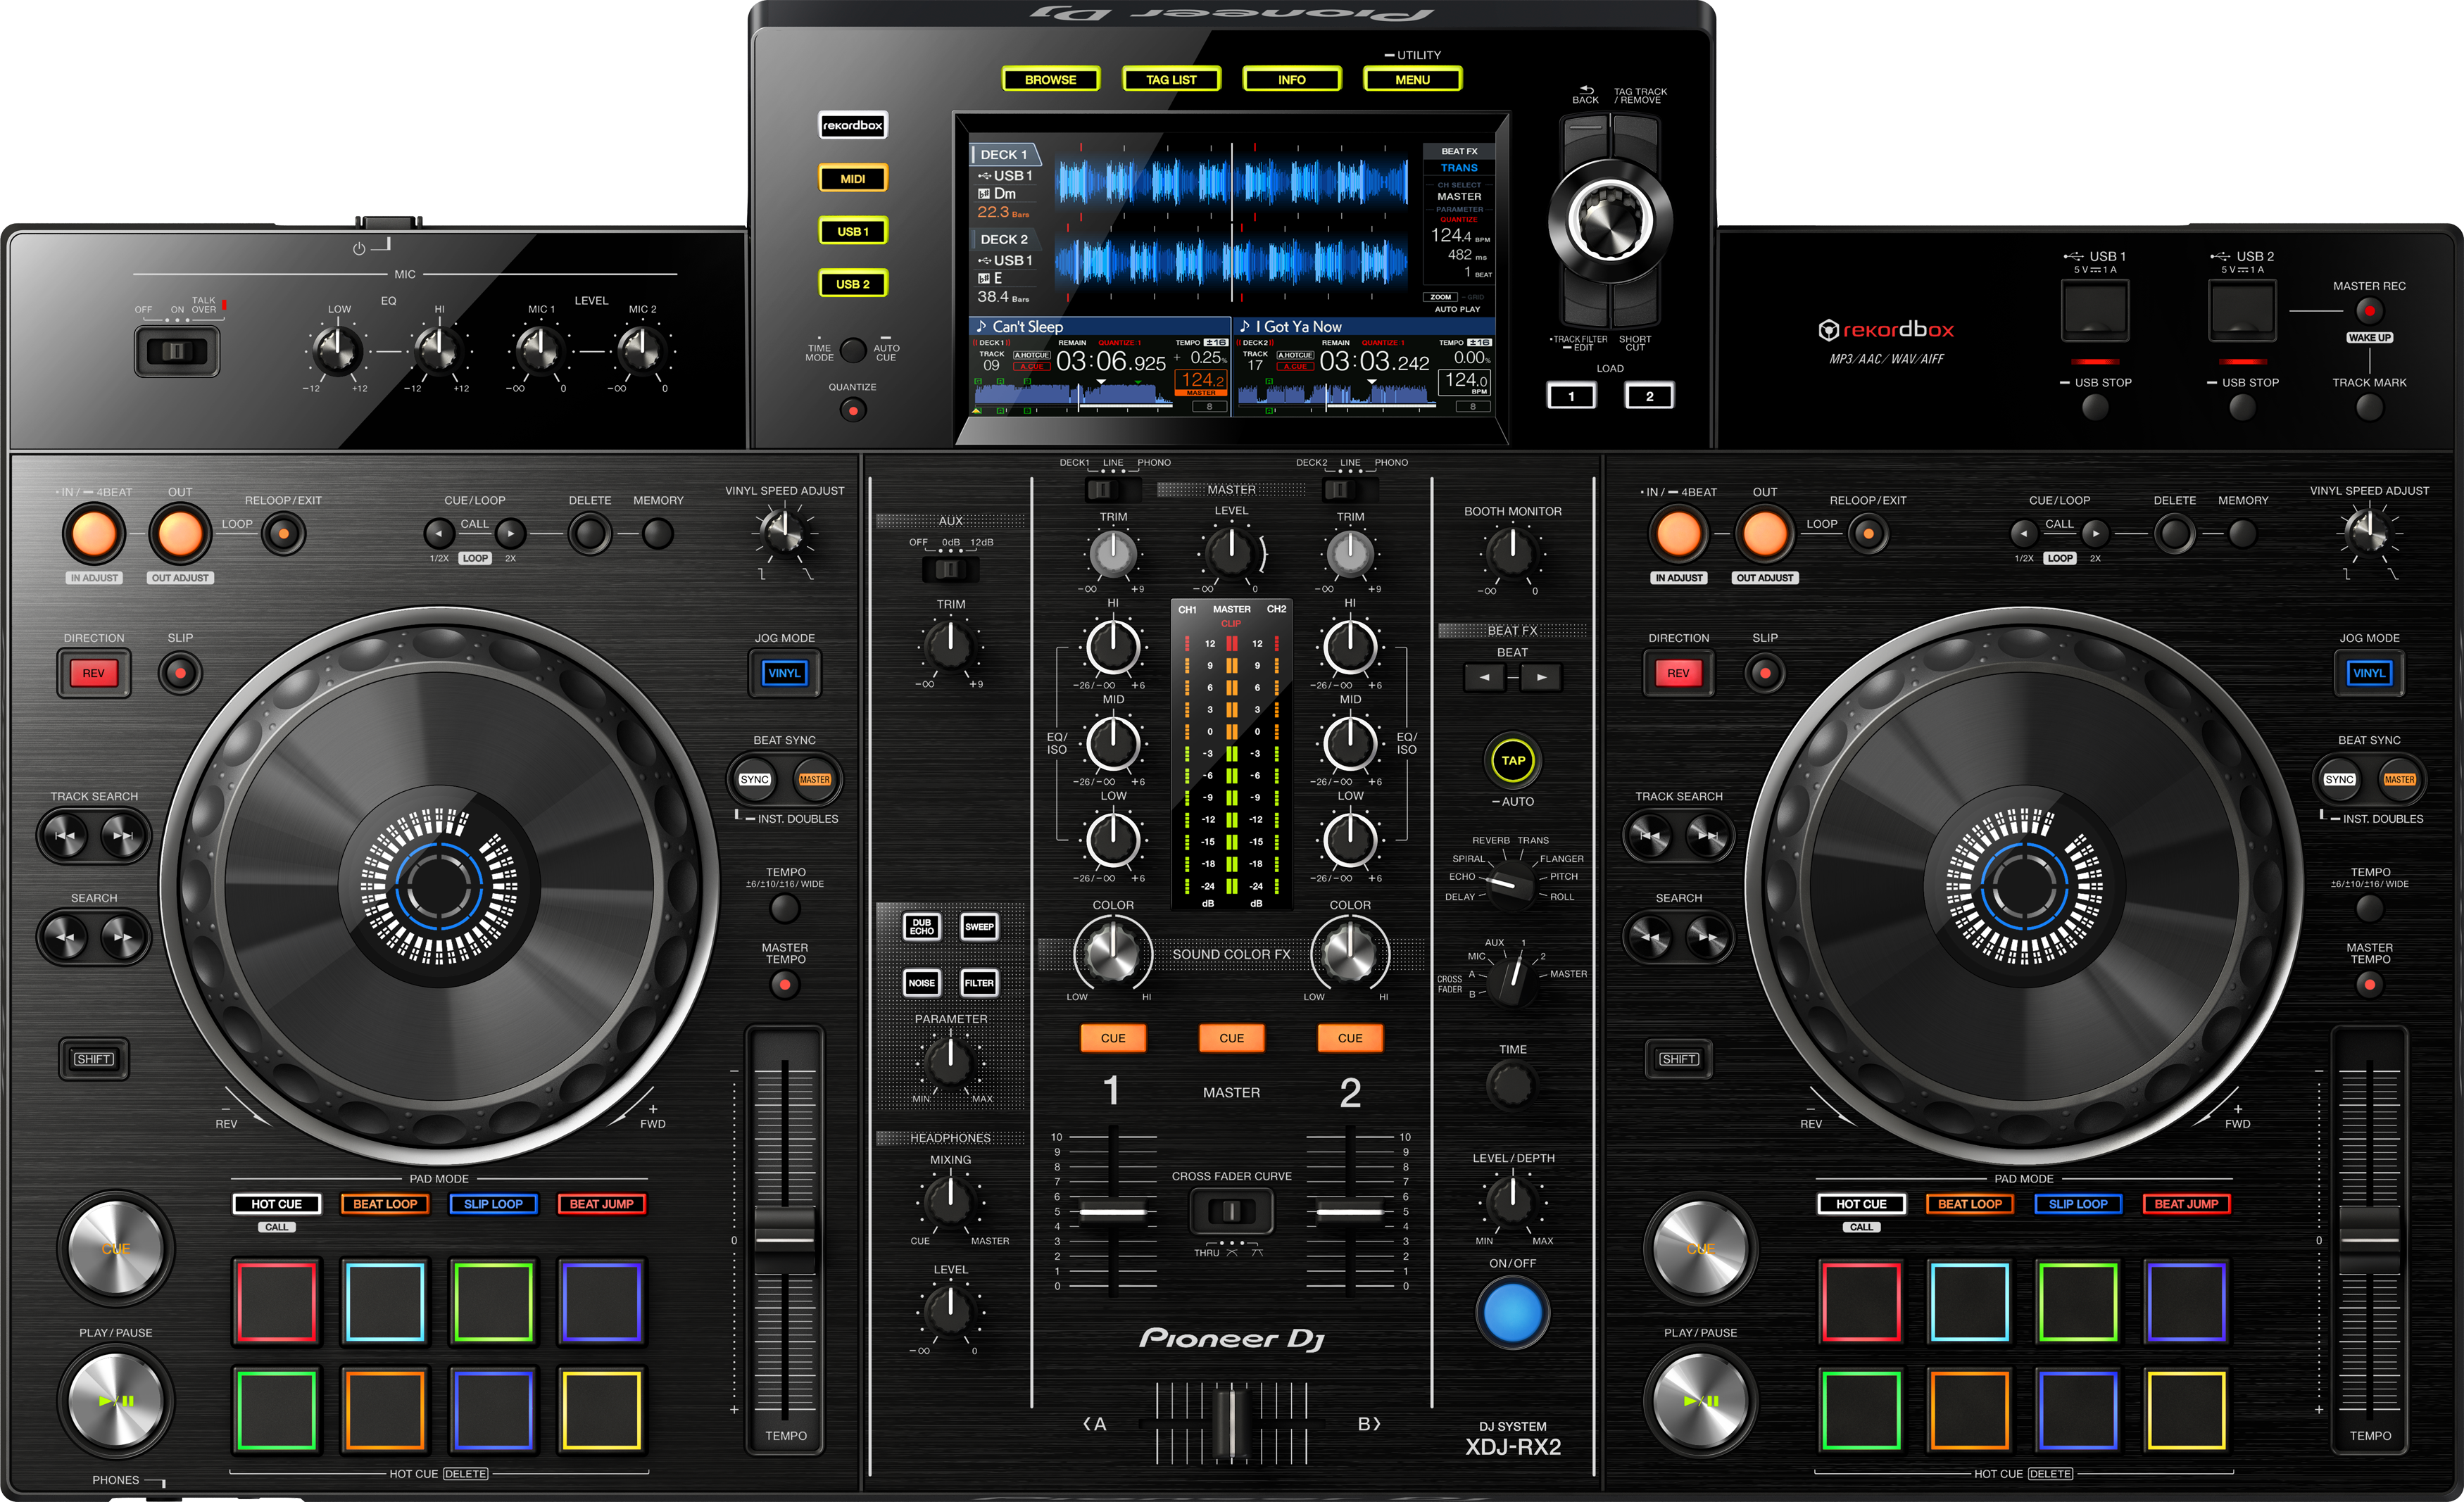 Download firmware or software for XDJ-RX2 - Pioneer DJ - Global